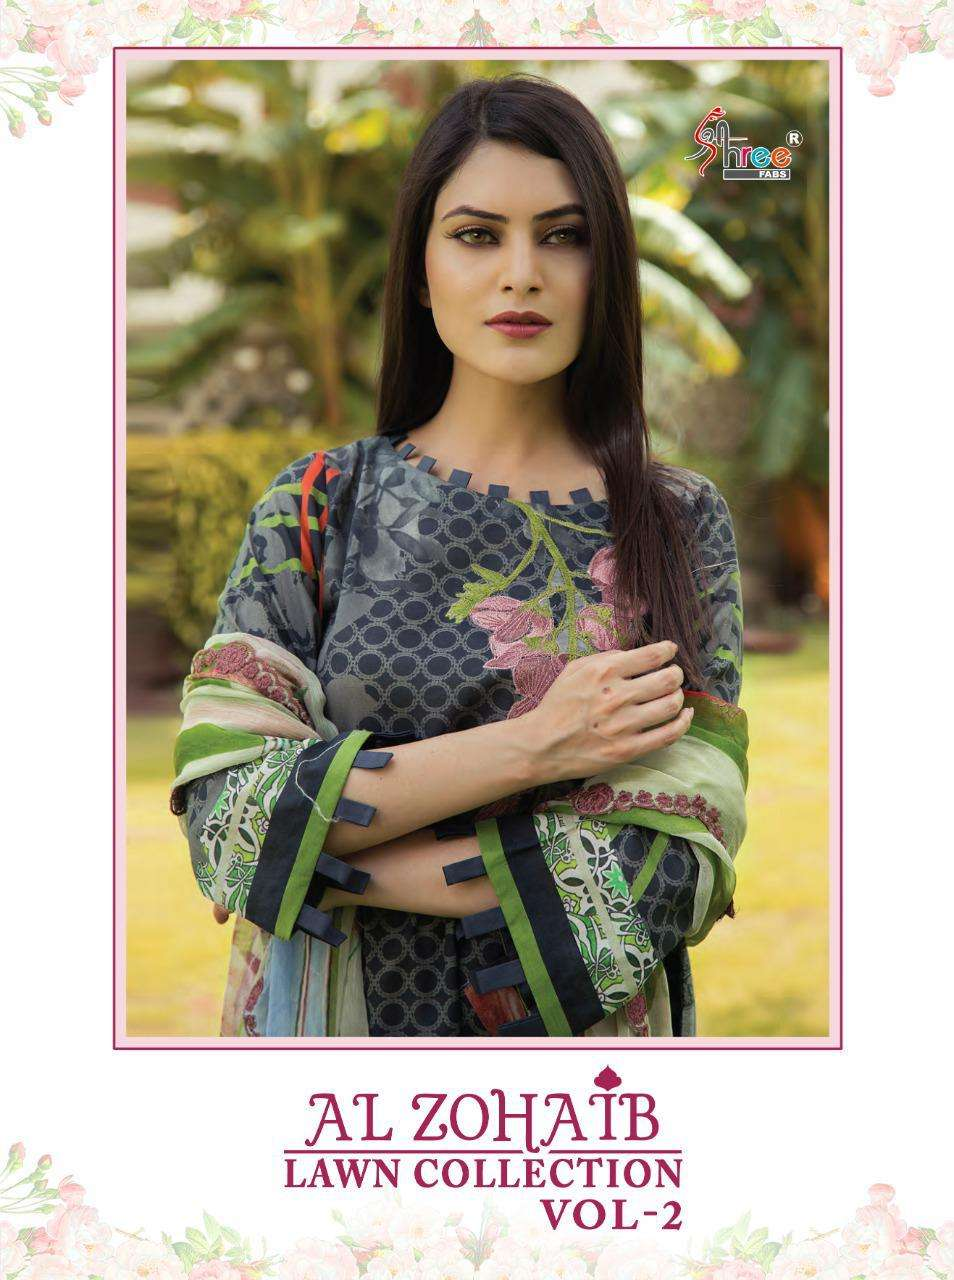 Shree Fab Al Zohaib Lawn Collection Vol 2 Pure Cotton print With embroidery Work Pakistani Suits Collection